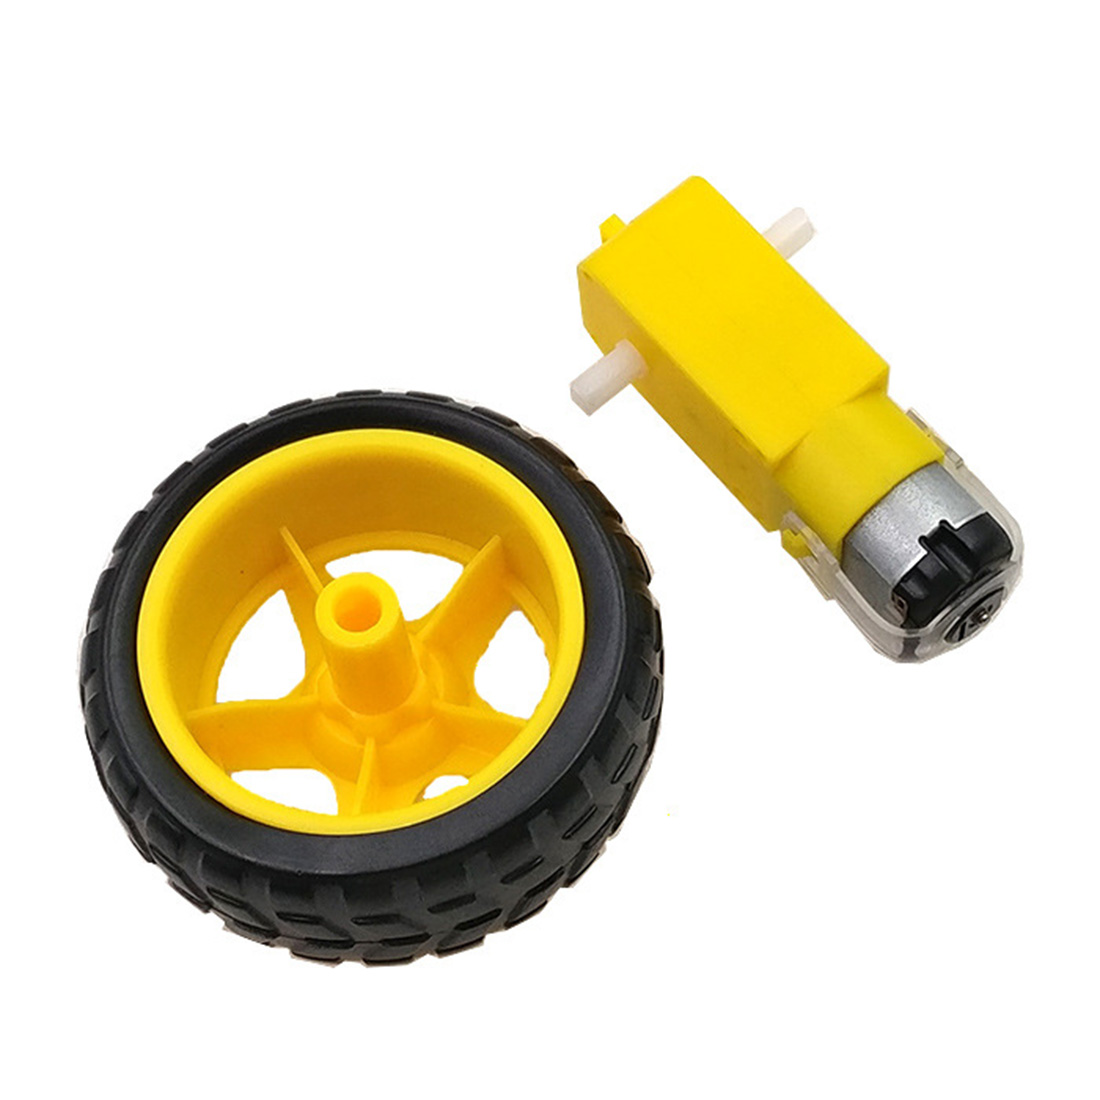 Drop Shipping Hot 2Pcs Small Smart Car Tyres Wheel Robot Chassis Kit With DC Speed Reduction Motor